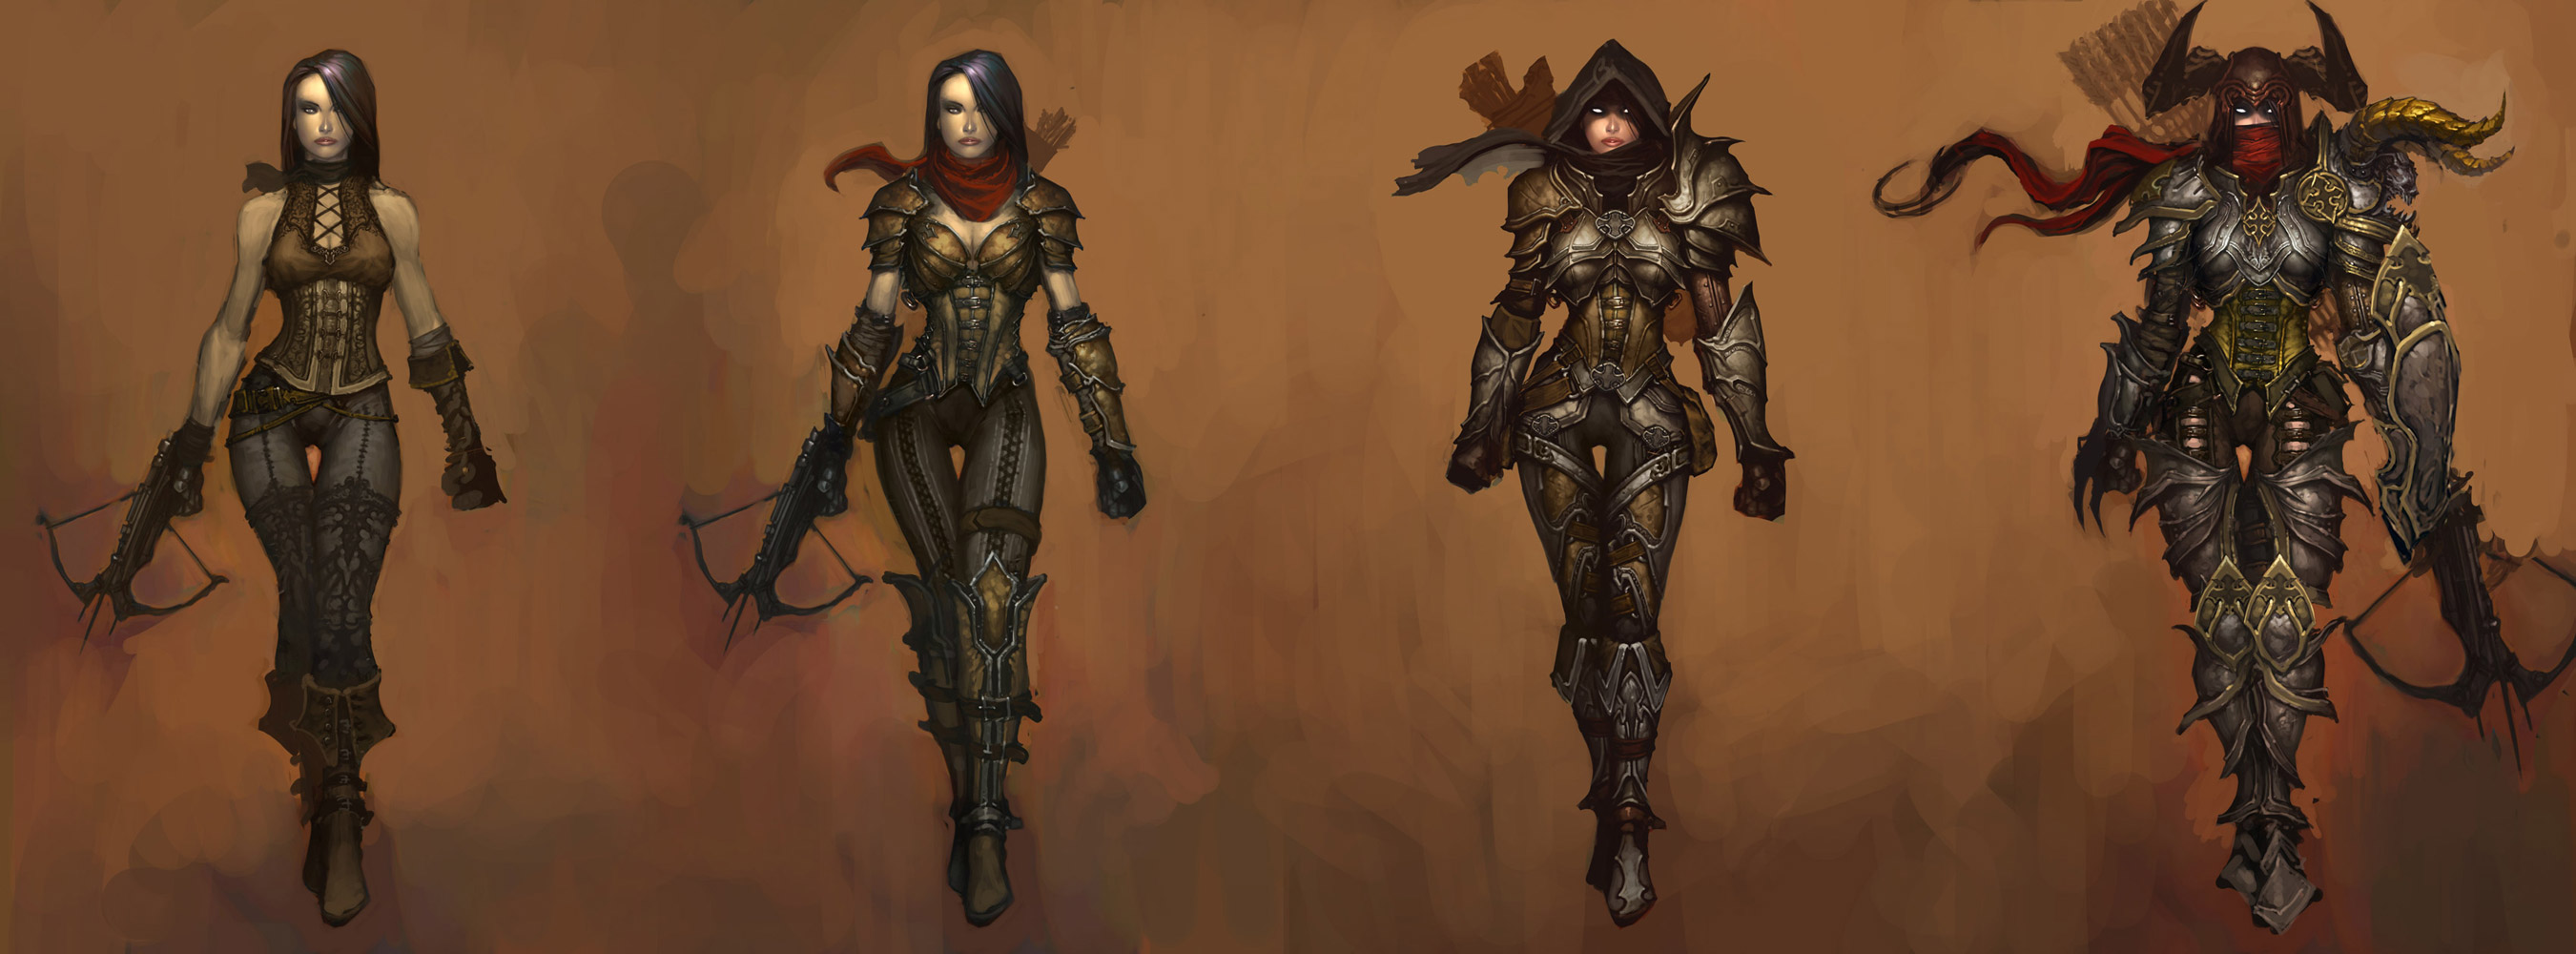 Diablo 3 demon hunter art capsule computers for Demon hunter